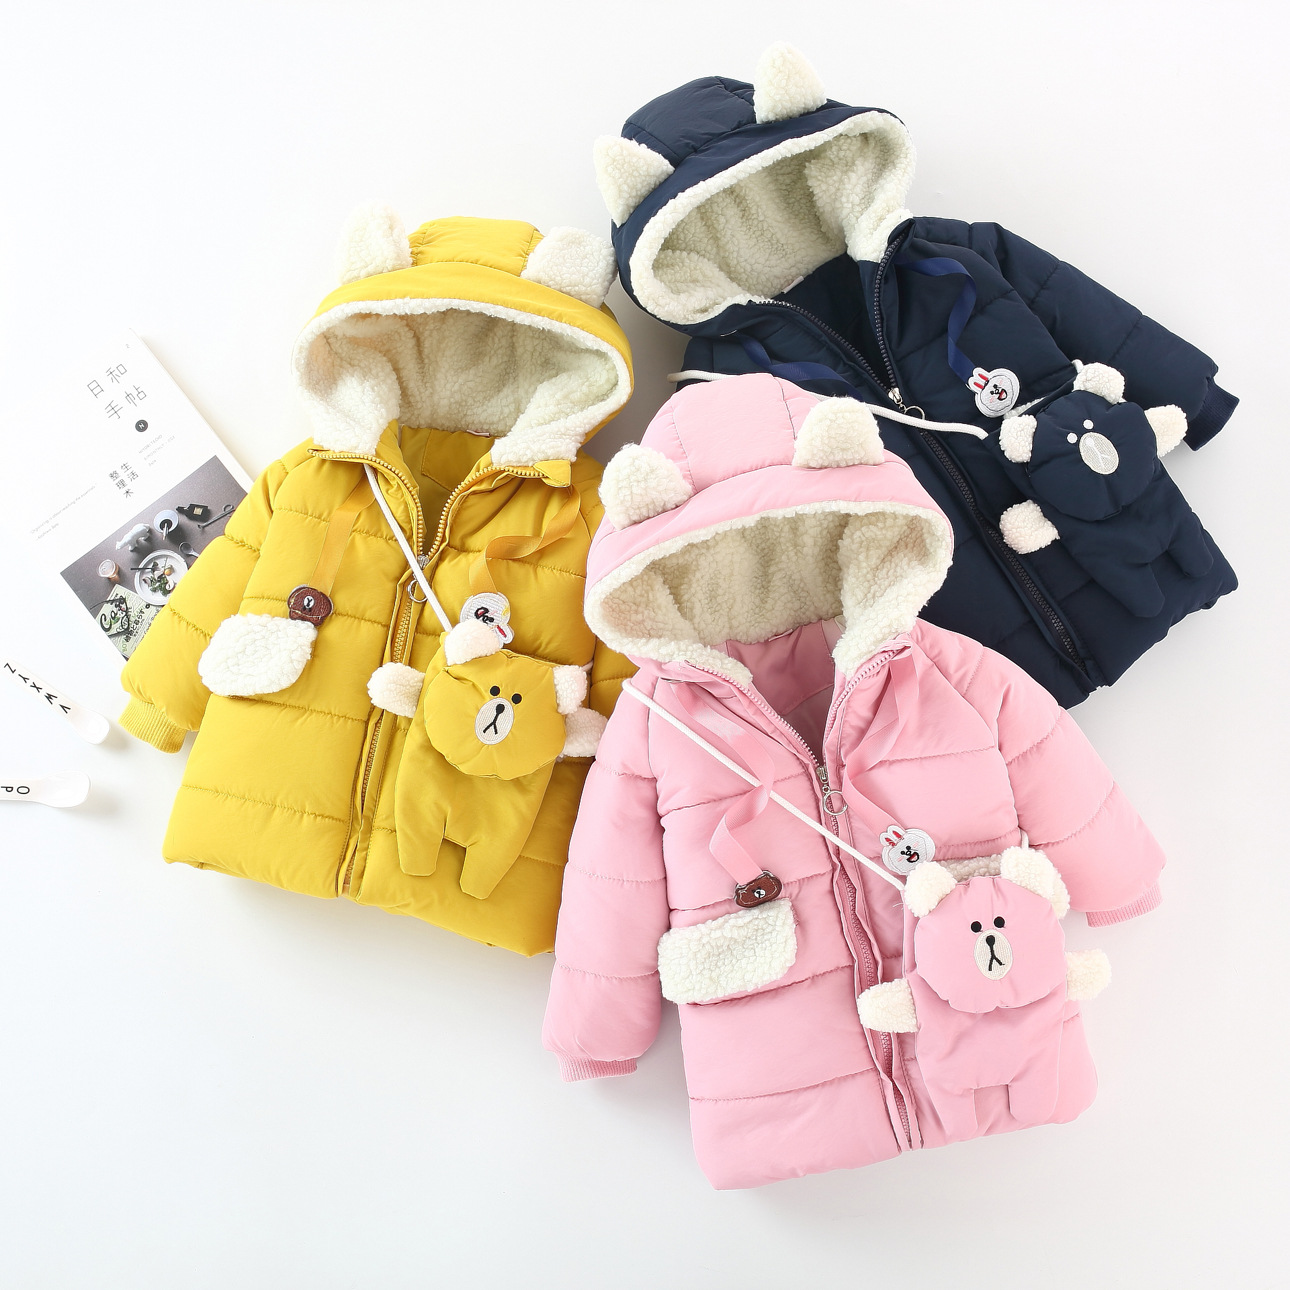 Girls Coat Autumn Winter Coat Long Sleeve Section of The New Cotton Padded Jacket For Girls Yellow 1-4 Years with Bag Fashion free shipping 2015 new arrival national trend flower vintage medium long clip long sleeve coat loose cotton padded trench